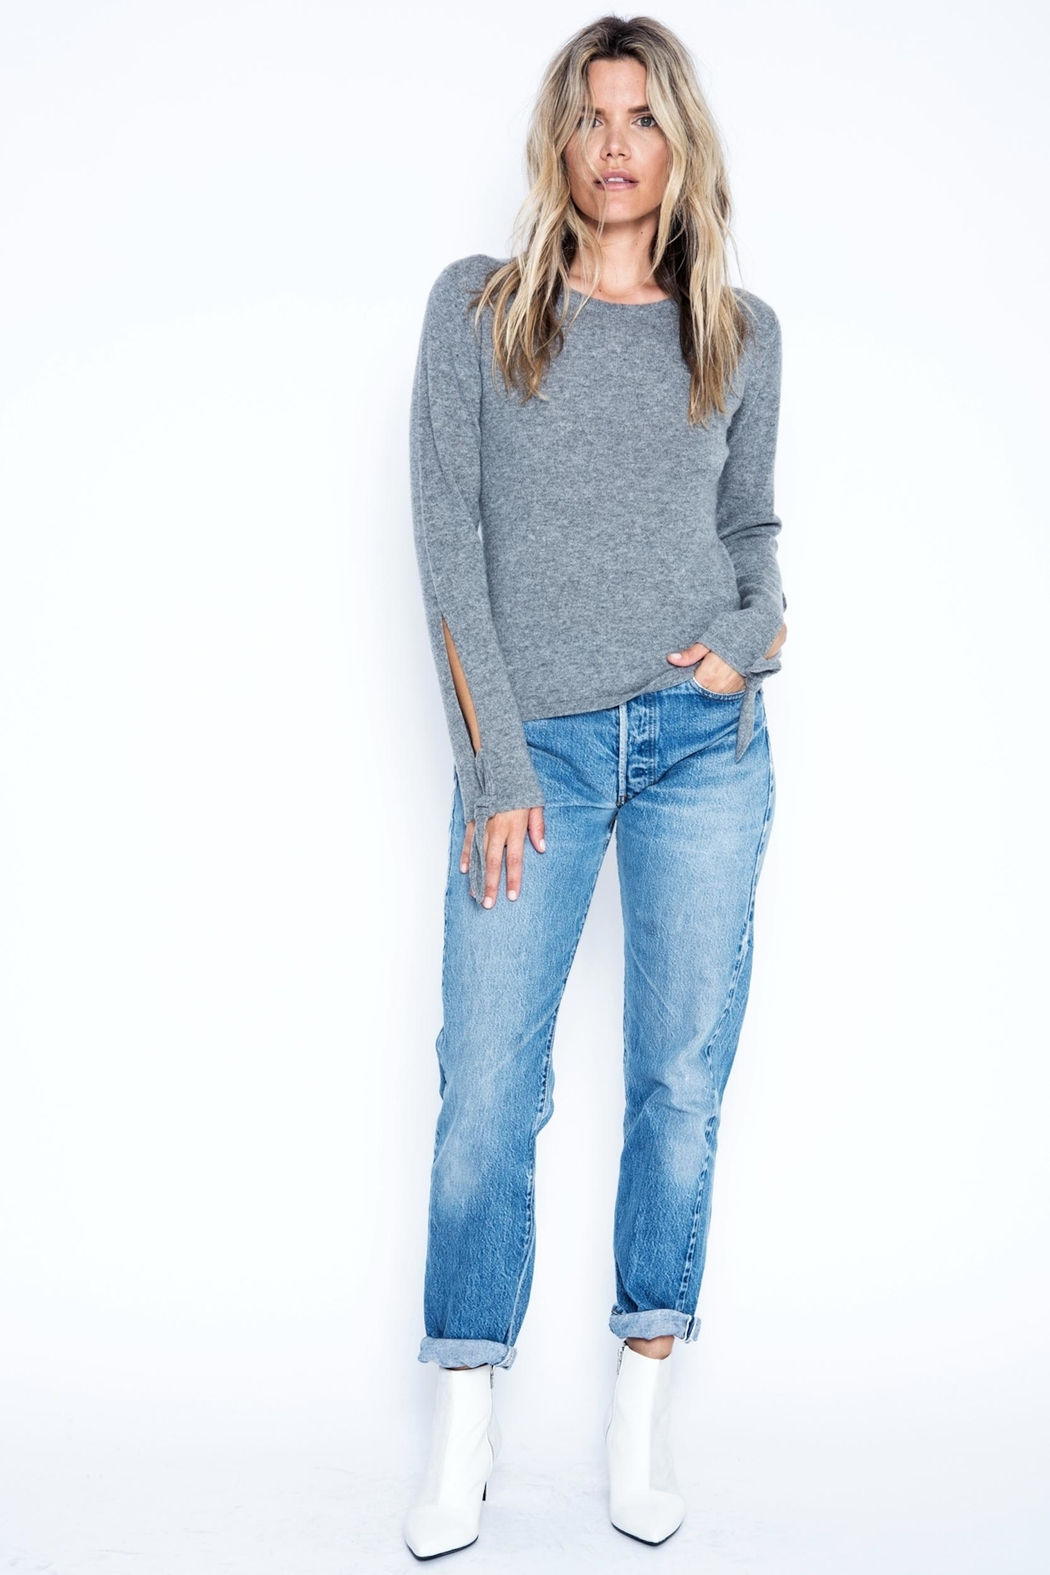 One Grey Day Kelly Cashmere Sweater - Main Image